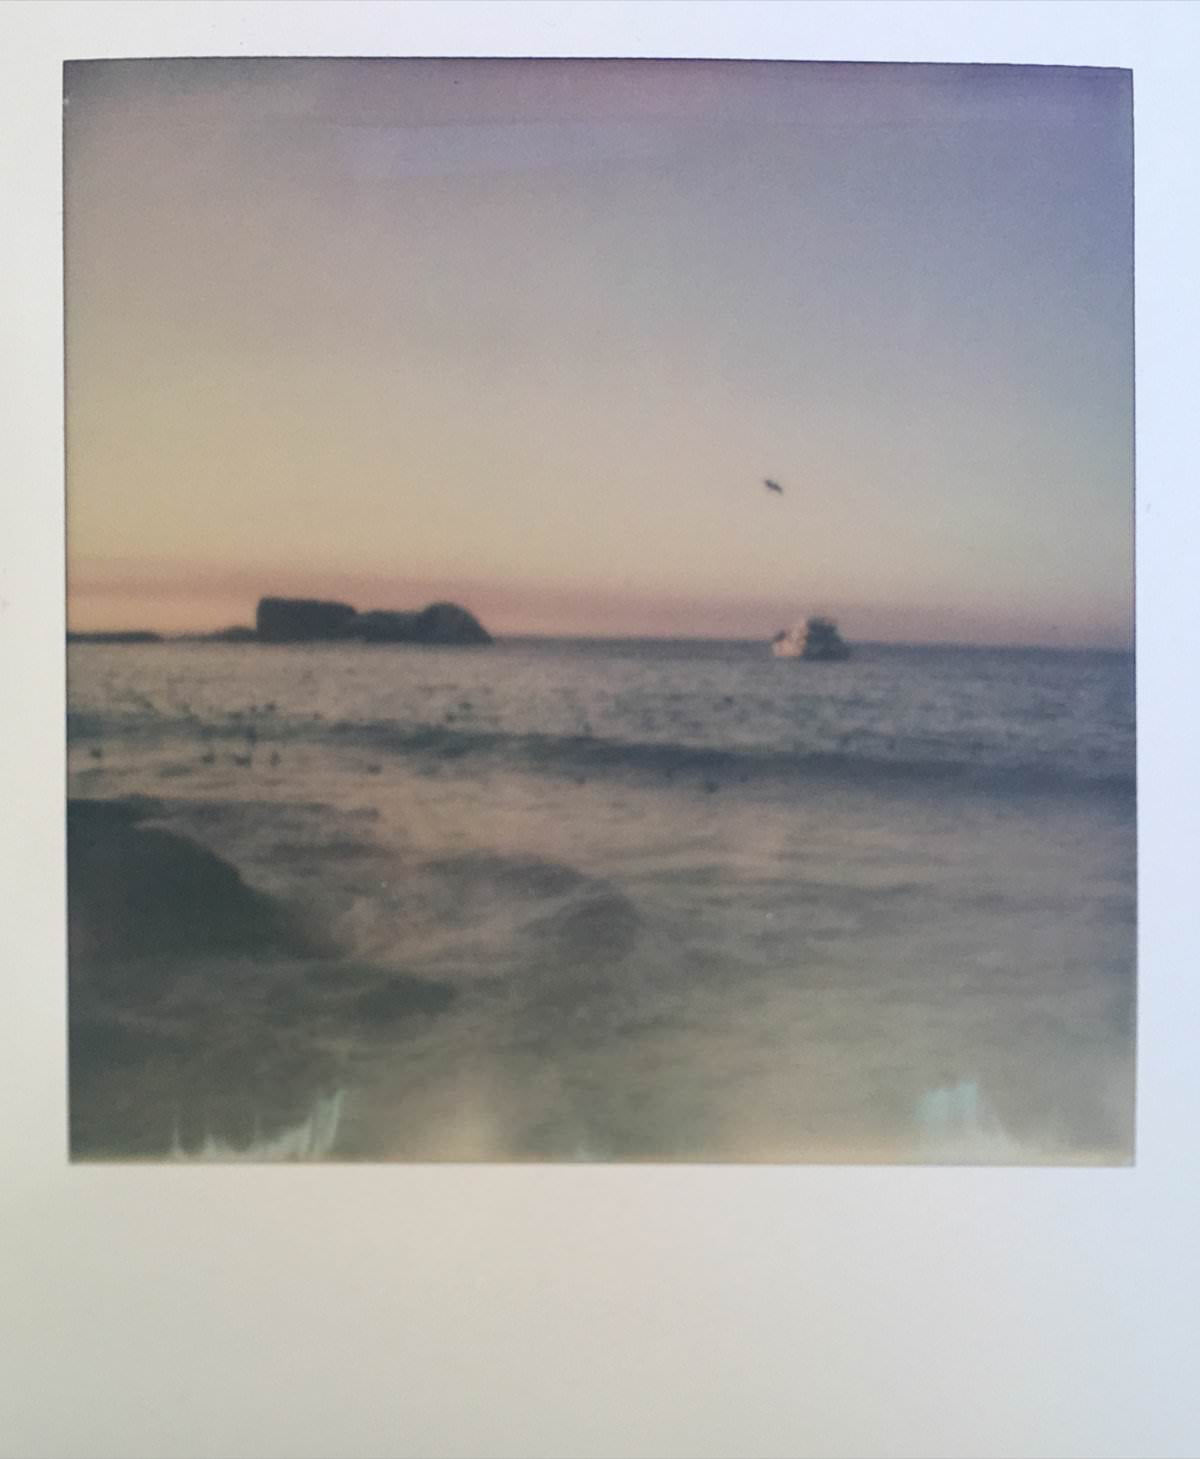 18-fine-art-polaroid-impossible-film-wedding-photography-cape-town